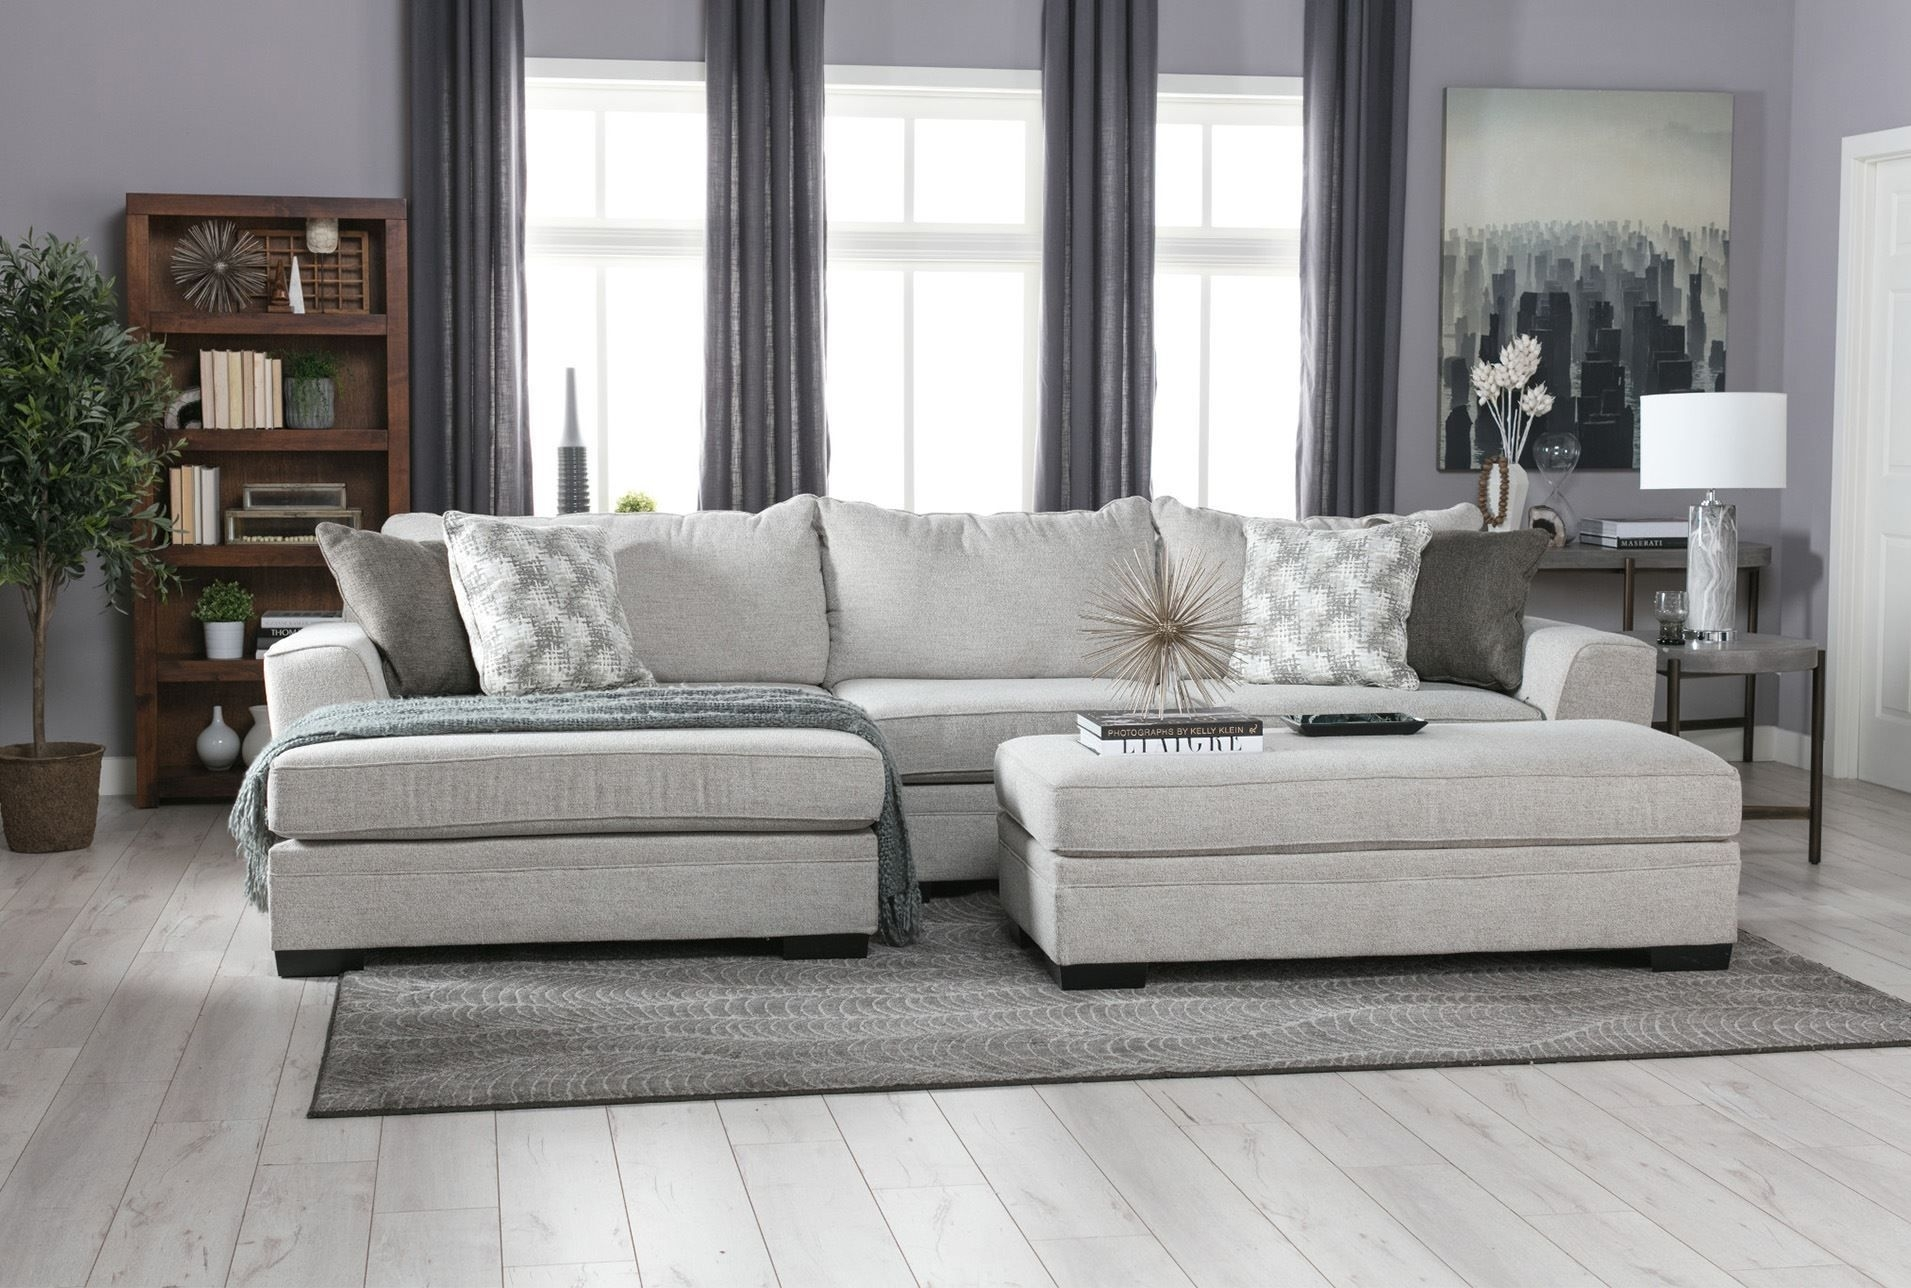 Delano 2 Piece Sectional W/laf Oversized Chaise | Sylvia Son In Delano 2 Piece Sectionals With Laf Oversized Chaise (Image 12 of 25)